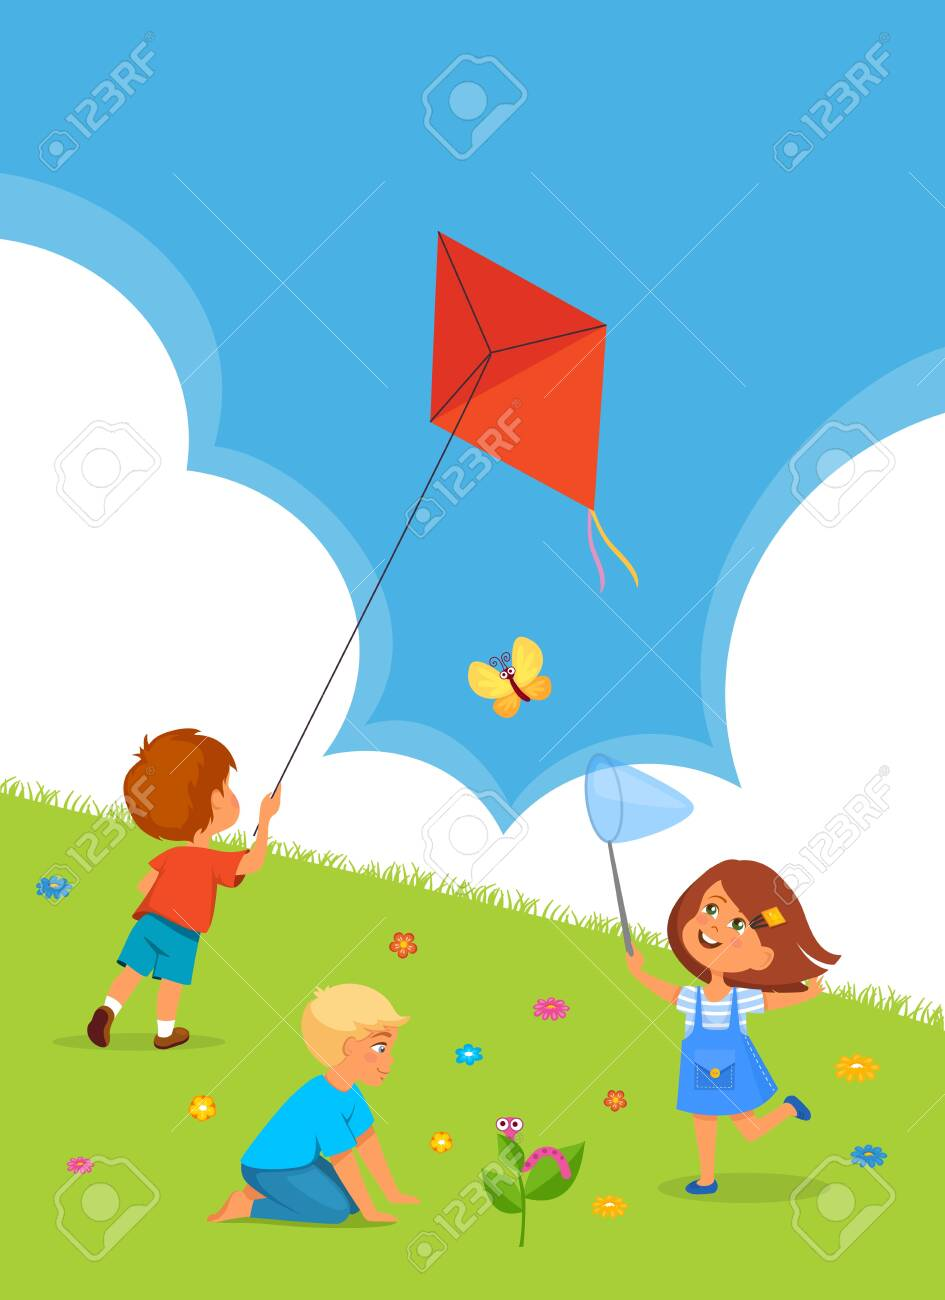 Vector illustration of kids playing outdoors. Boy with kite and girl with net - 130346798